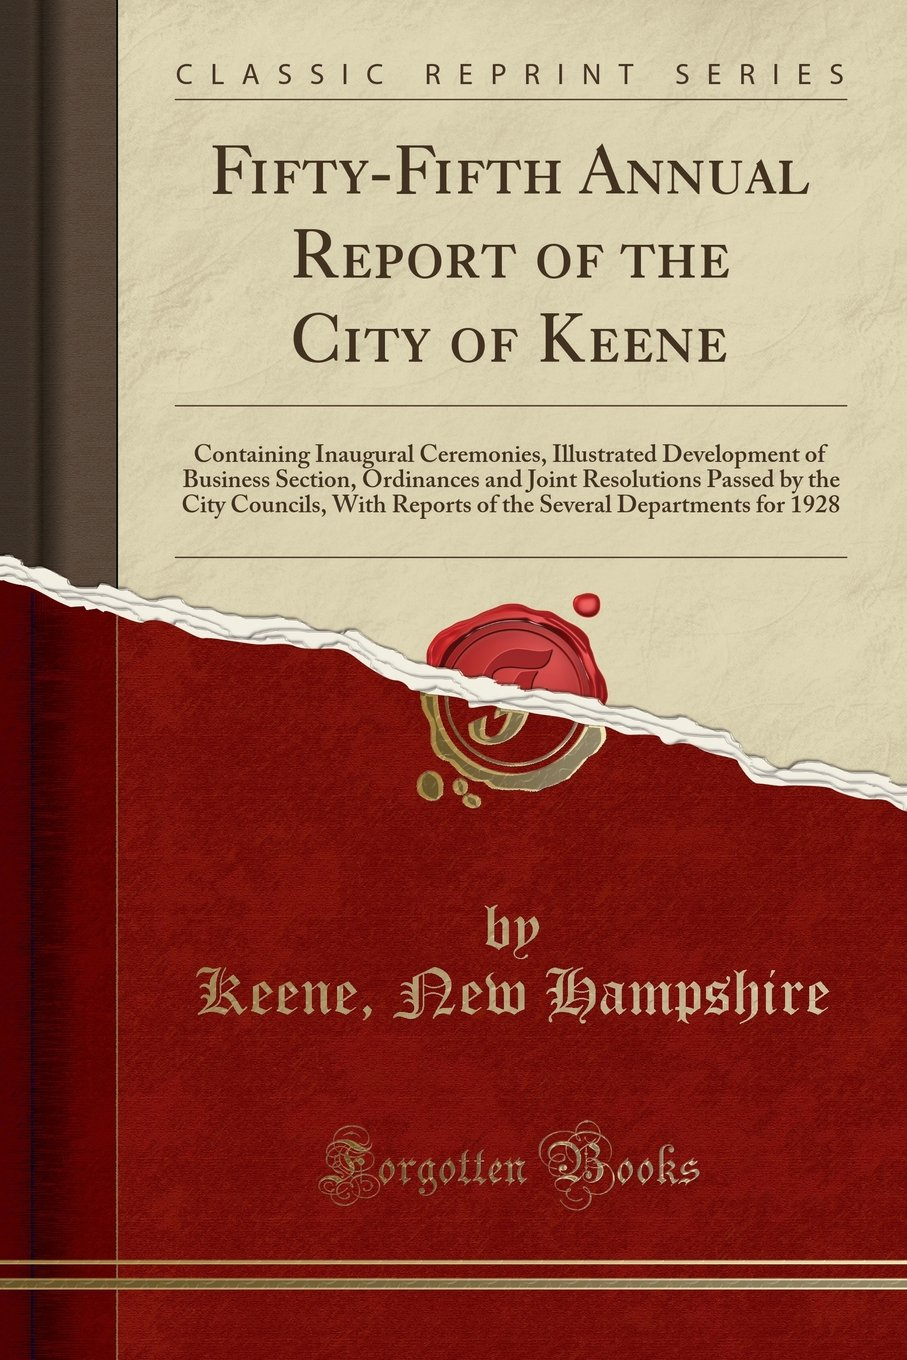 Read Online Fifty-Fifth Annual Report of the City of Keene: Containing Inaugural Ceremonies, Illustrated Development of Business Section, Ordinances and Joint Departments for 1928 (Classic Reprint) ebook